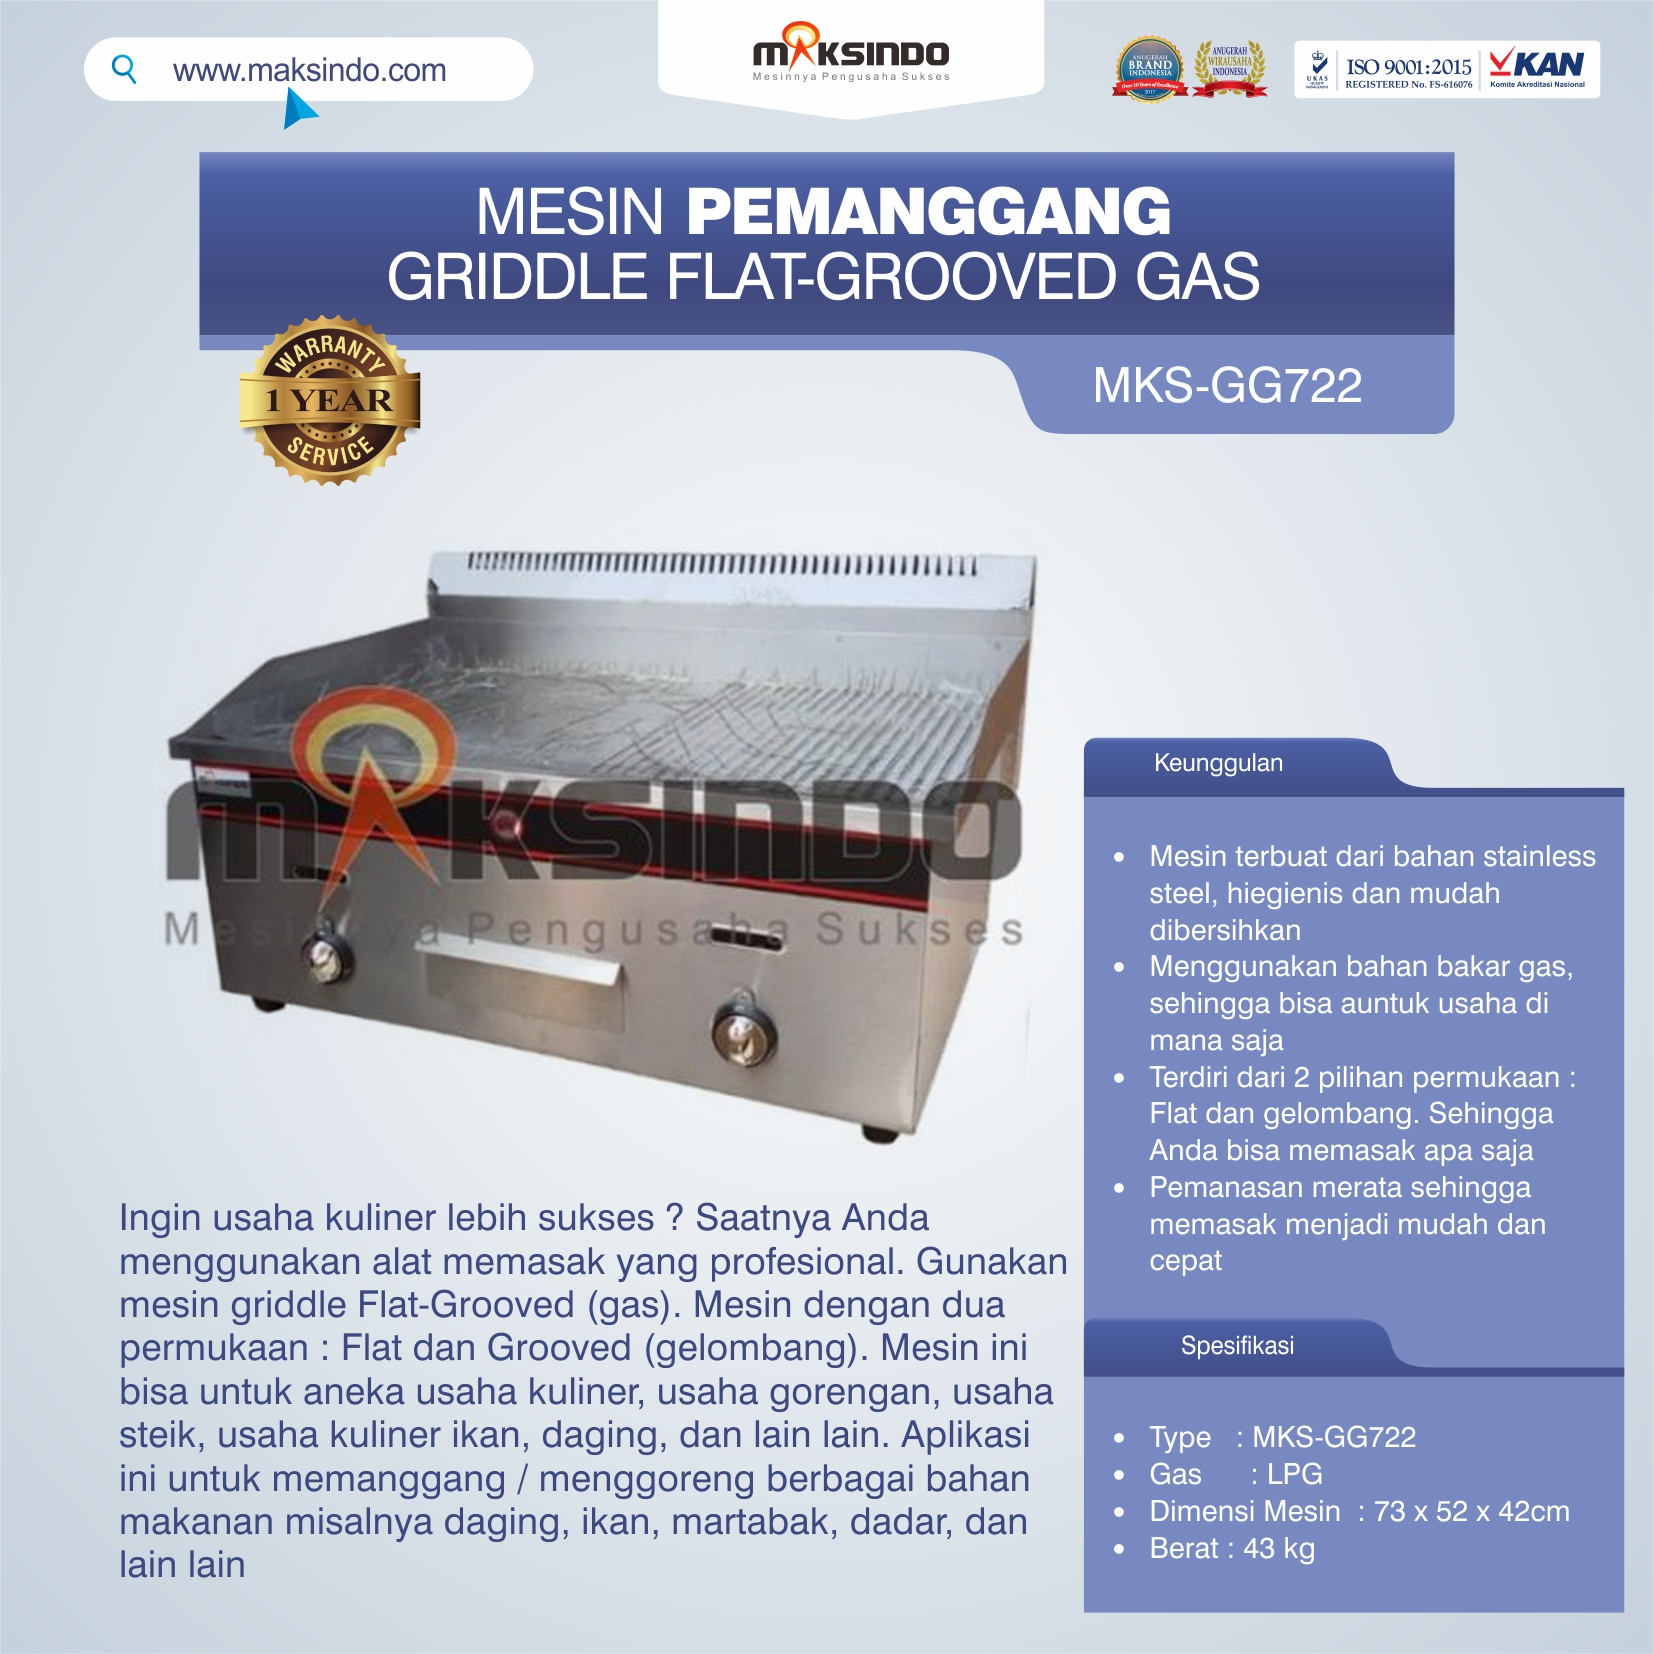 Jual Pemanggang Griddle Flat-Grooved Gas (GG722) di Solo